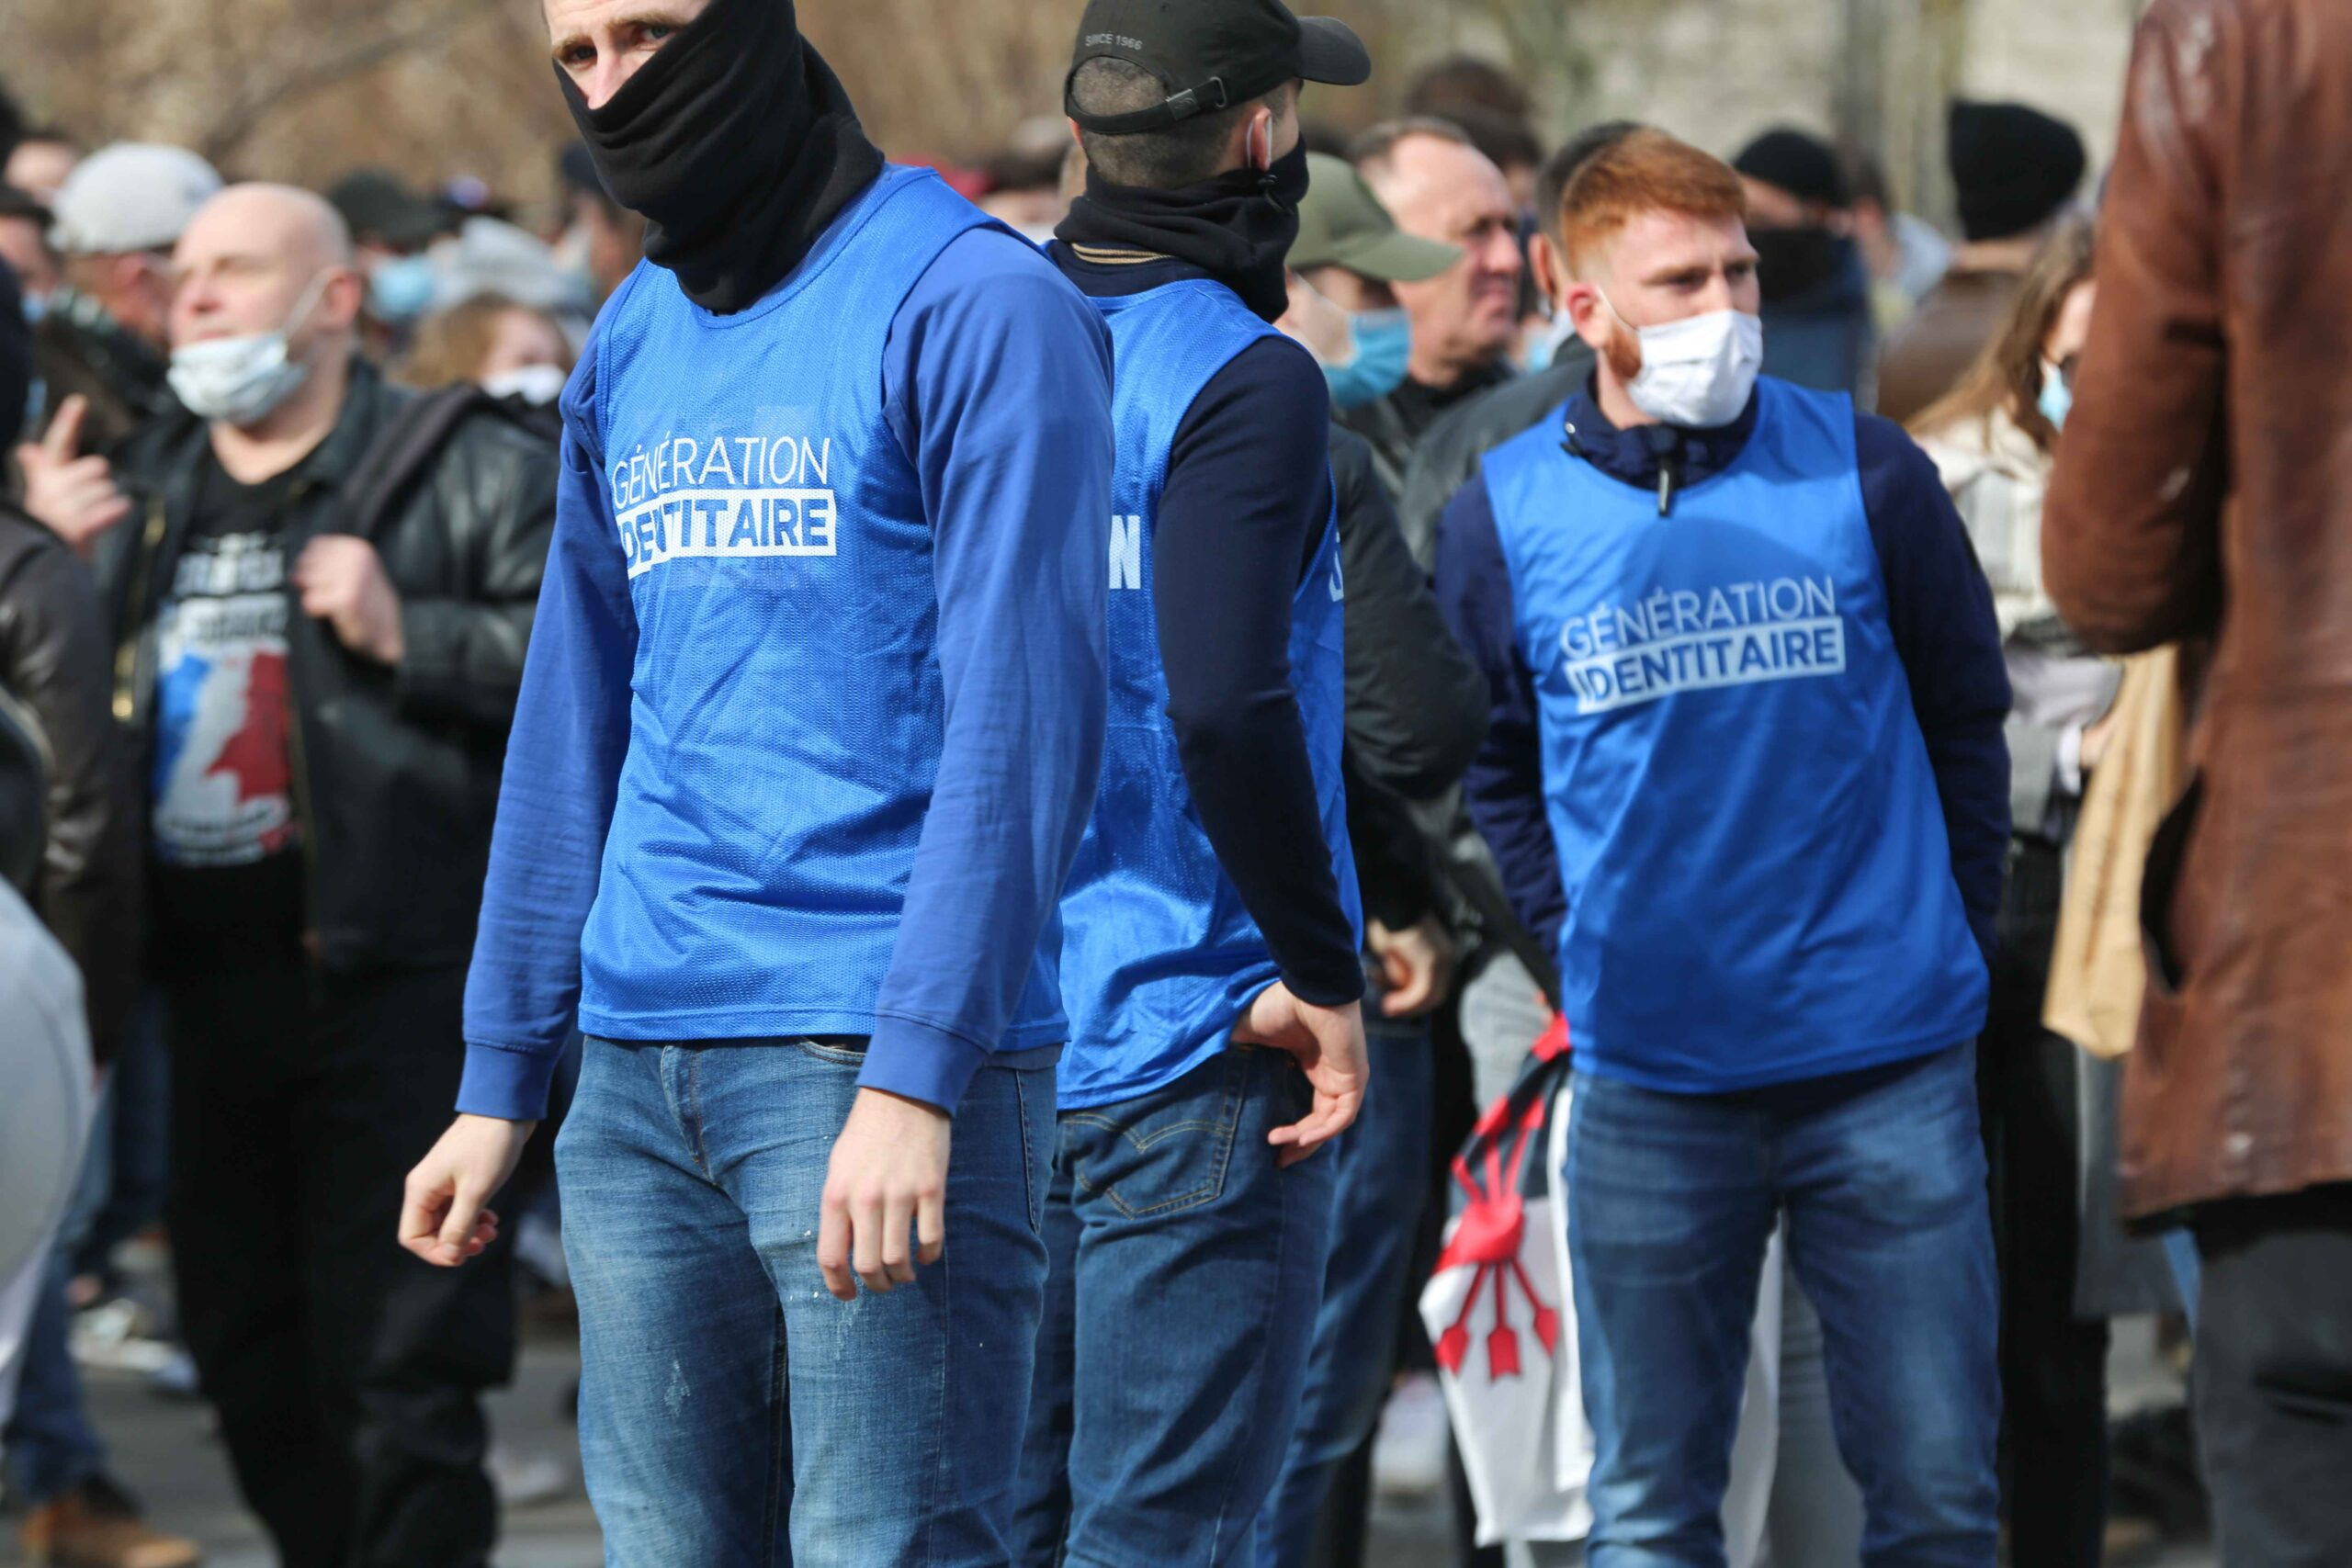 Members of far right group Generation Identitaire (GI) wear a t-shirt with the name of the group during a protest against its potential dissolutionin in Place Denfert Rochereau, in Paris  on February 20, 2021. The dissolution of Generation identitaire was